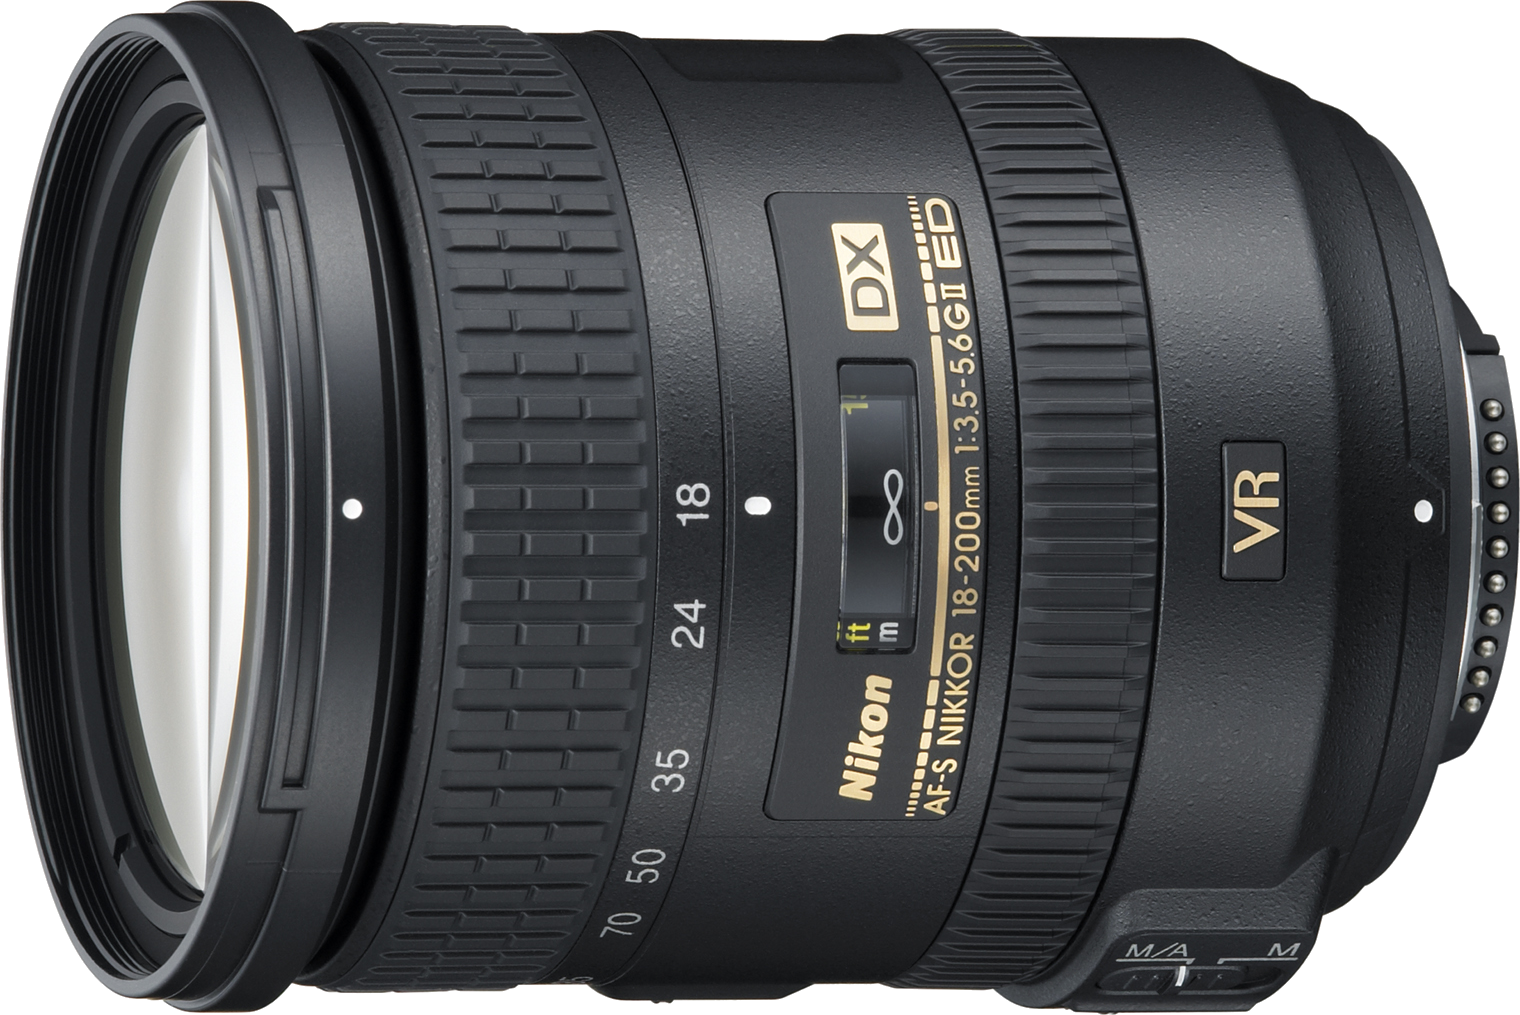 This lens has a very large focal length range, making it an excellent walkaround lens for crop sensor cameras.